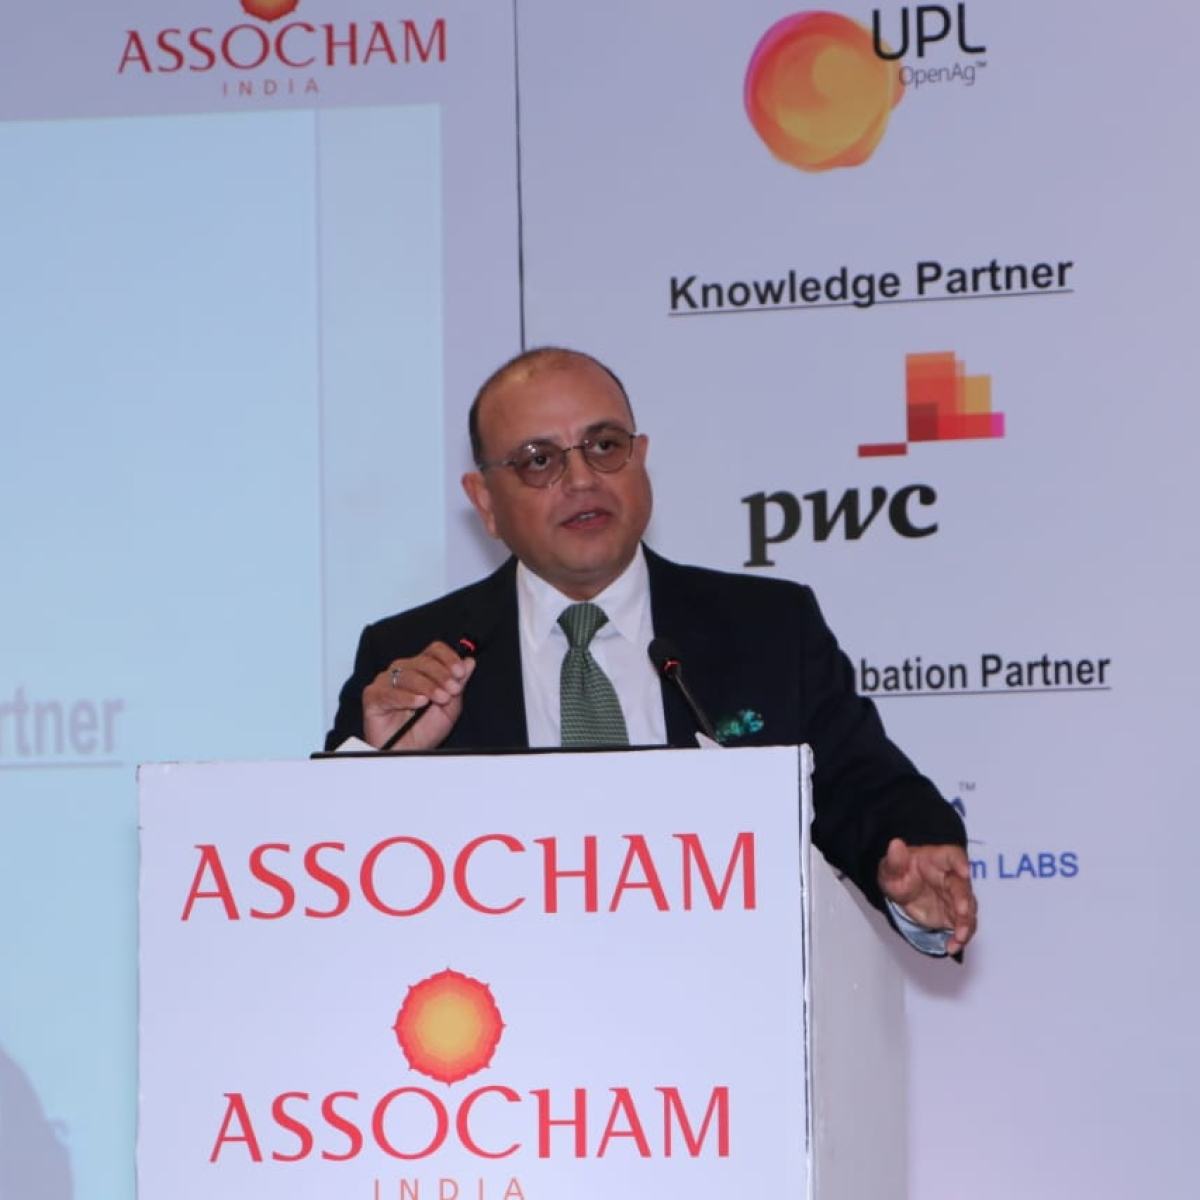 Stimulus package of $200-$300 bn needed to thwart COVID-19 crisis: ASSOCHAM